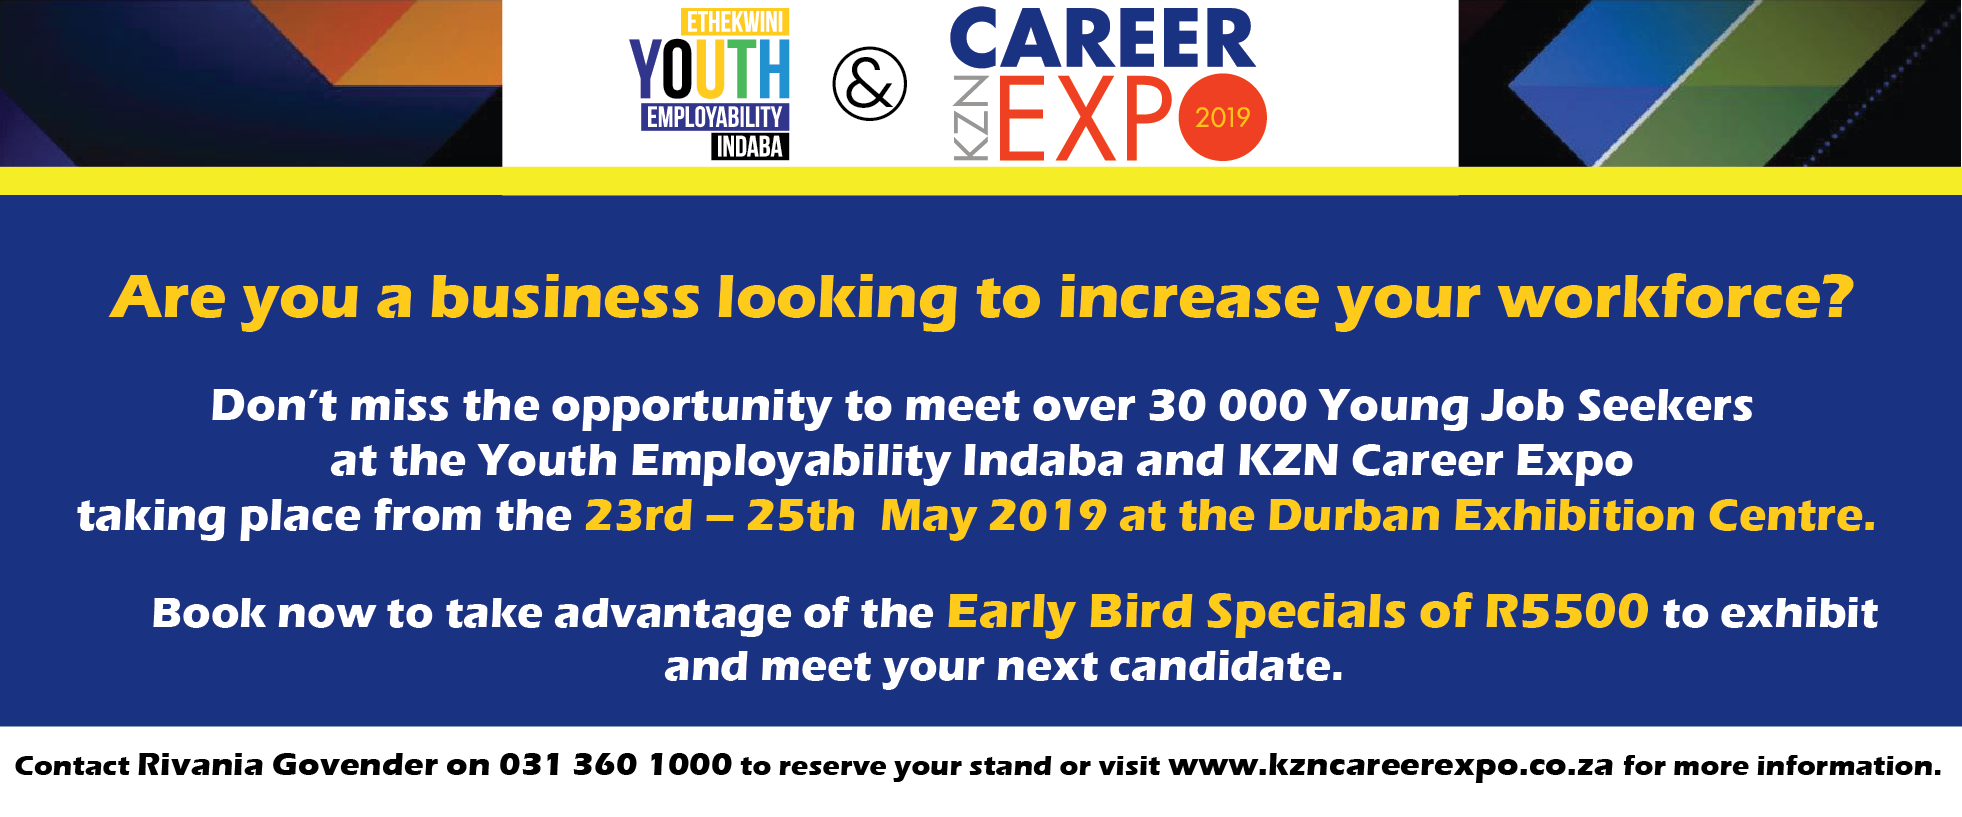 Careers Expo Compact 2019 v2-01